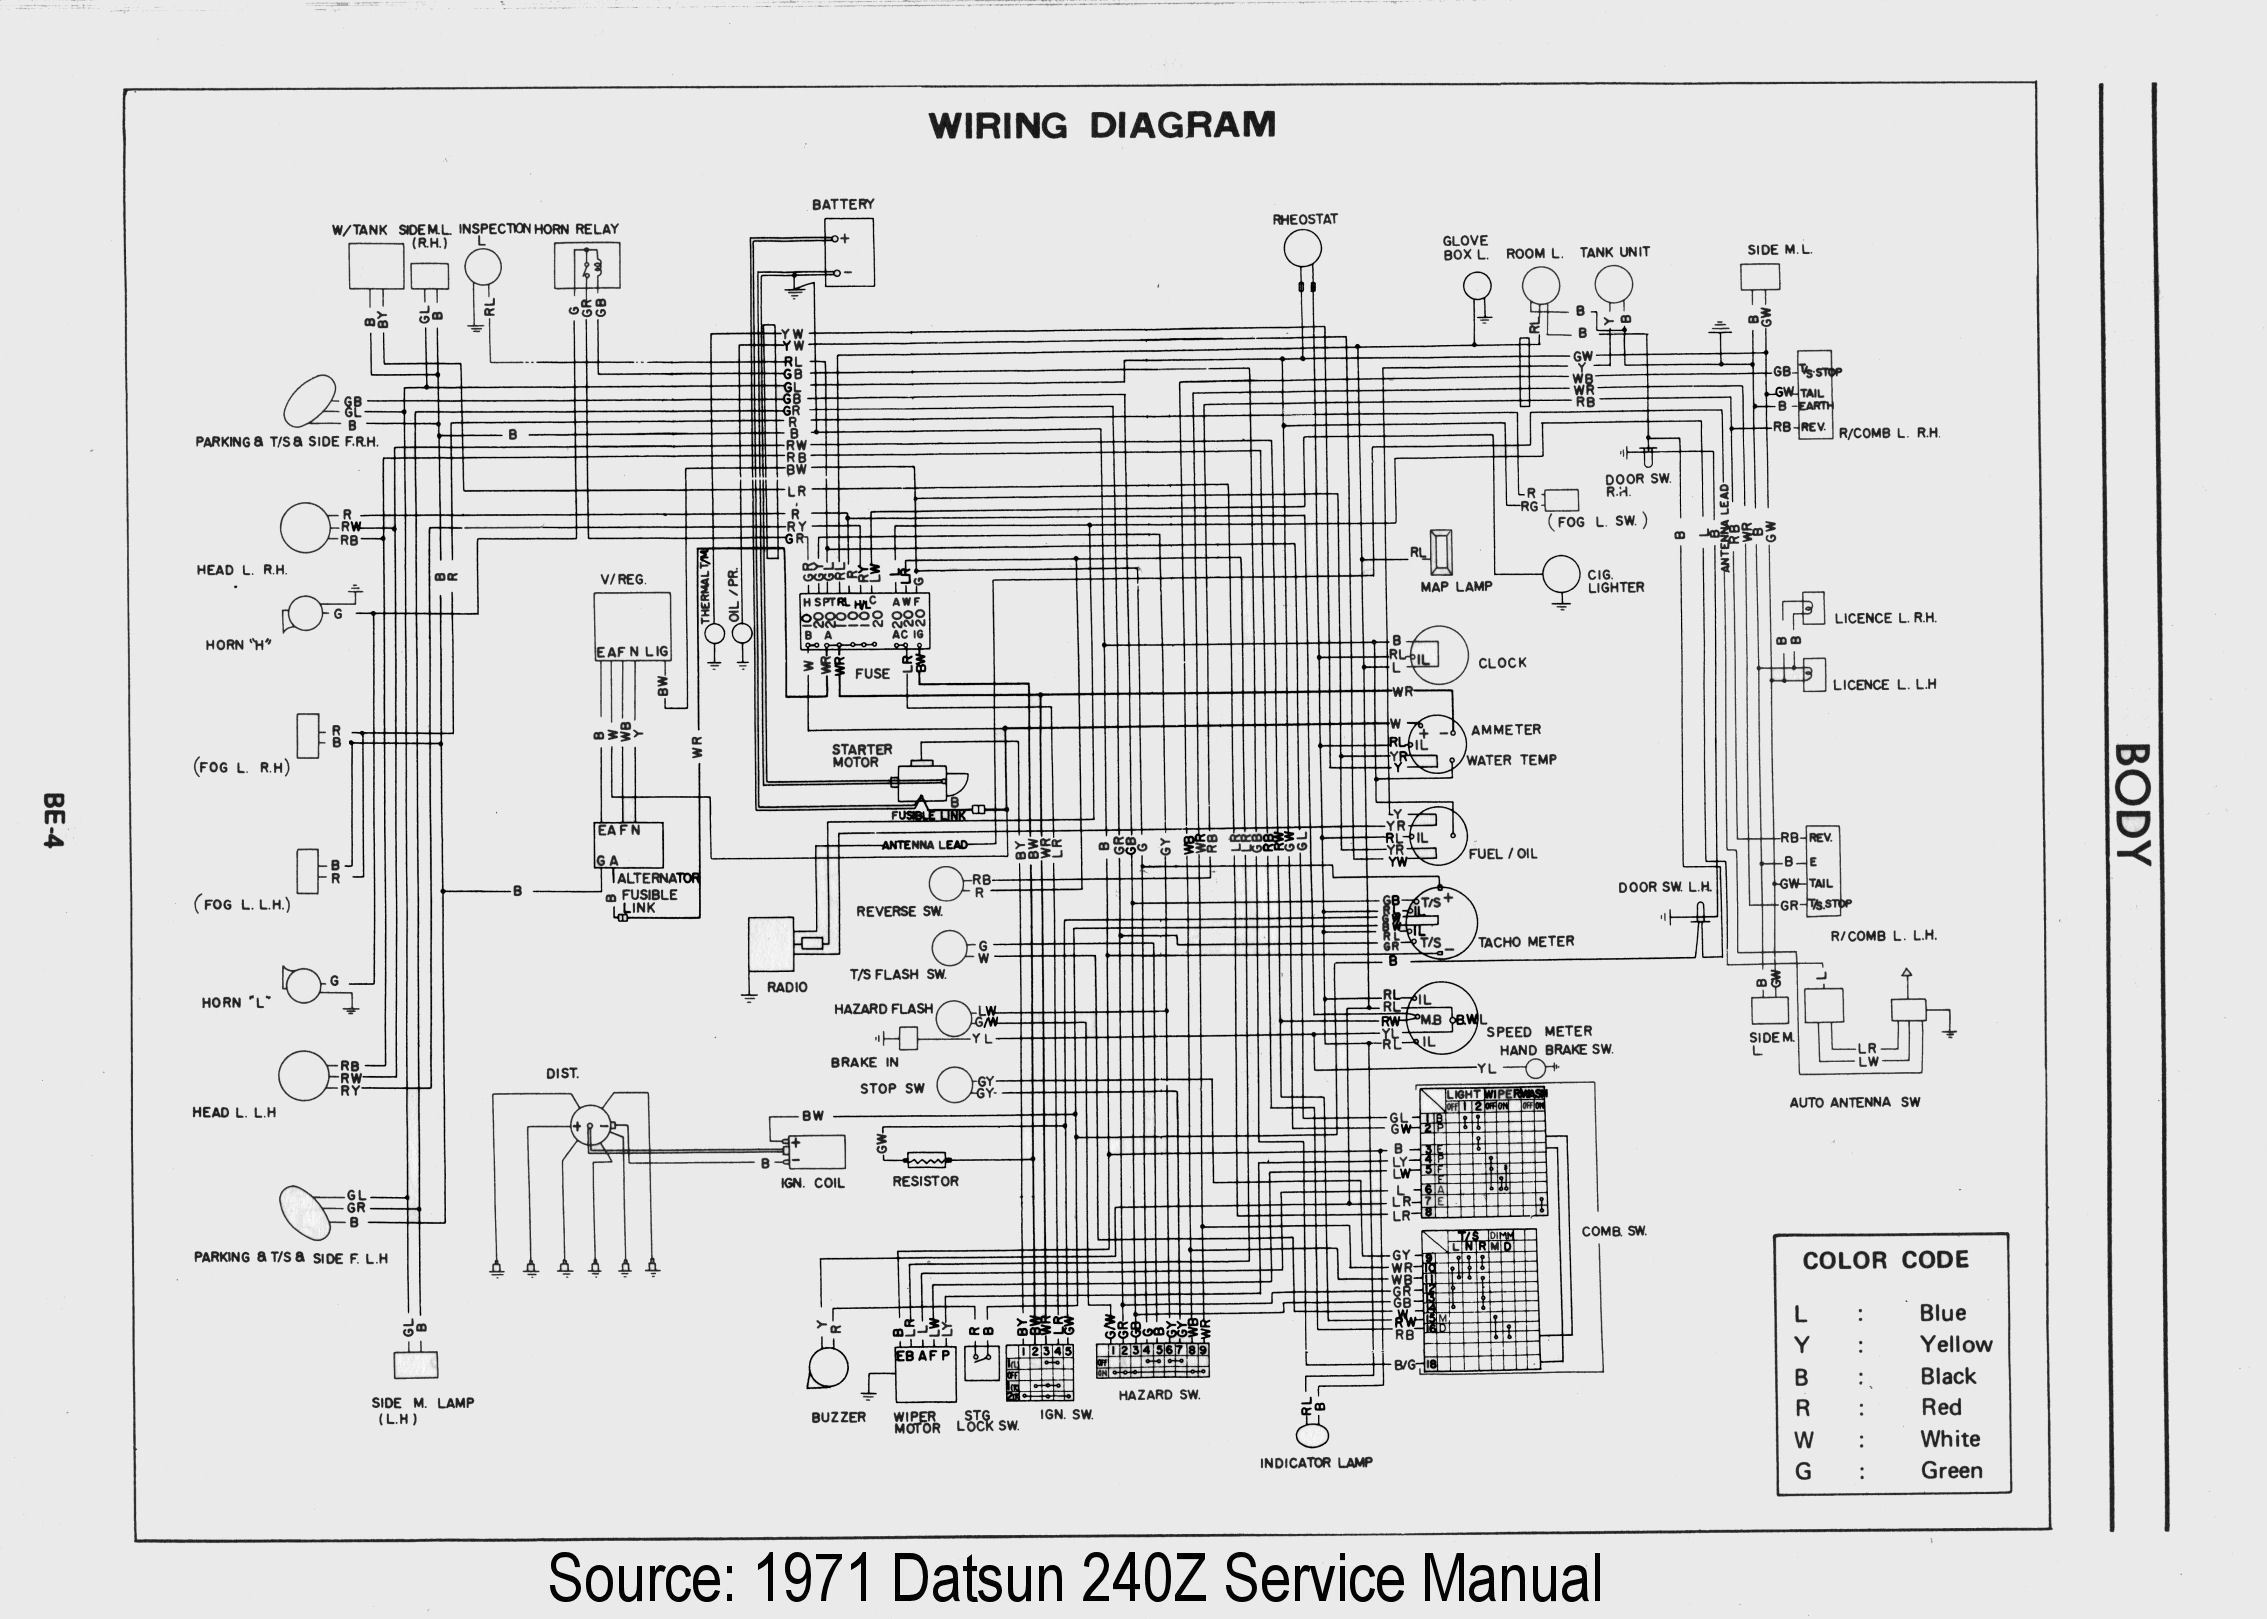 1977 280z Wiring Diagrams Diagram Libraries Buick Reatta Schematic Datsun 77 Onlinegeneric Troubleshooting Checklist Woodworkerb Best Of